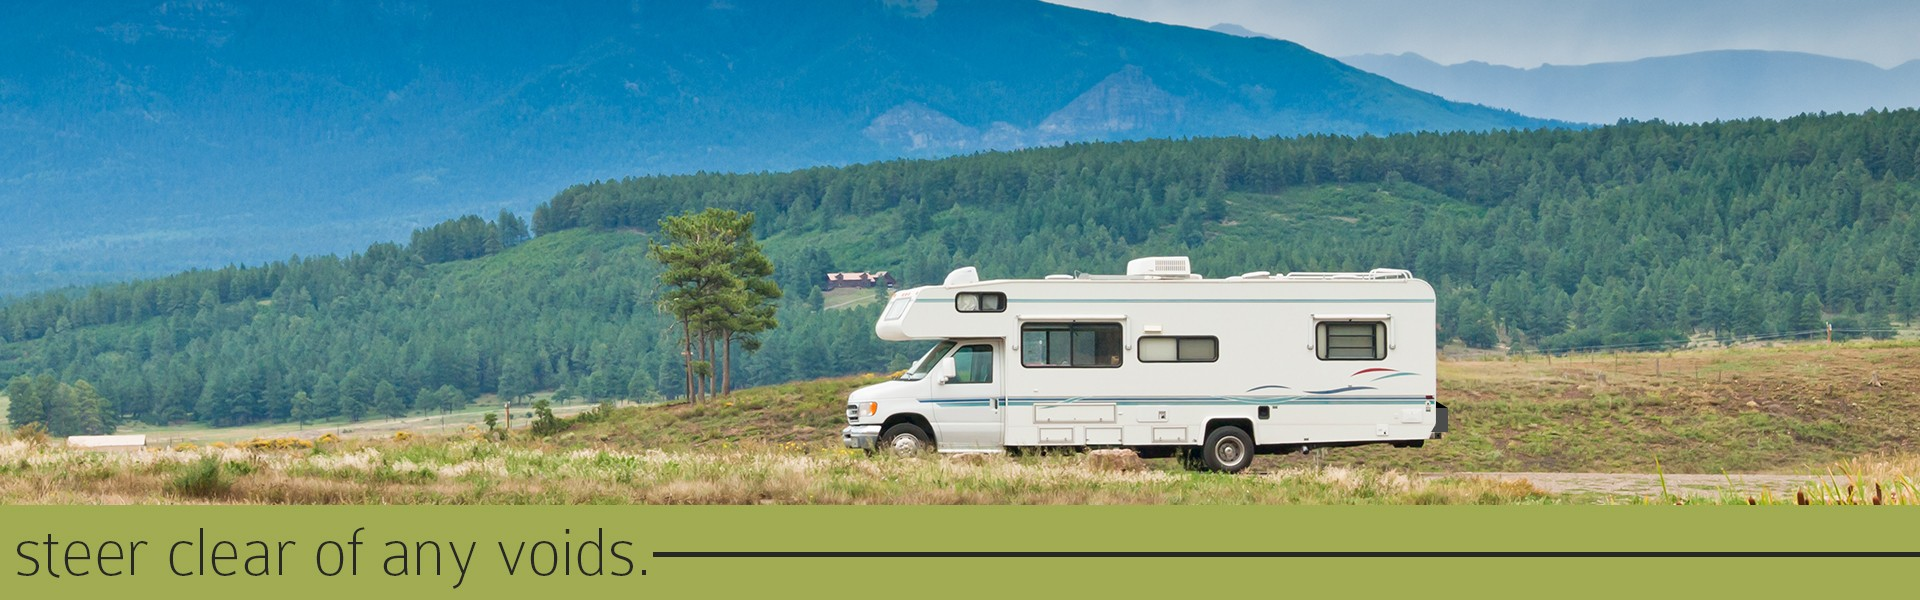 Steer clear of anything that could void your RV warranty